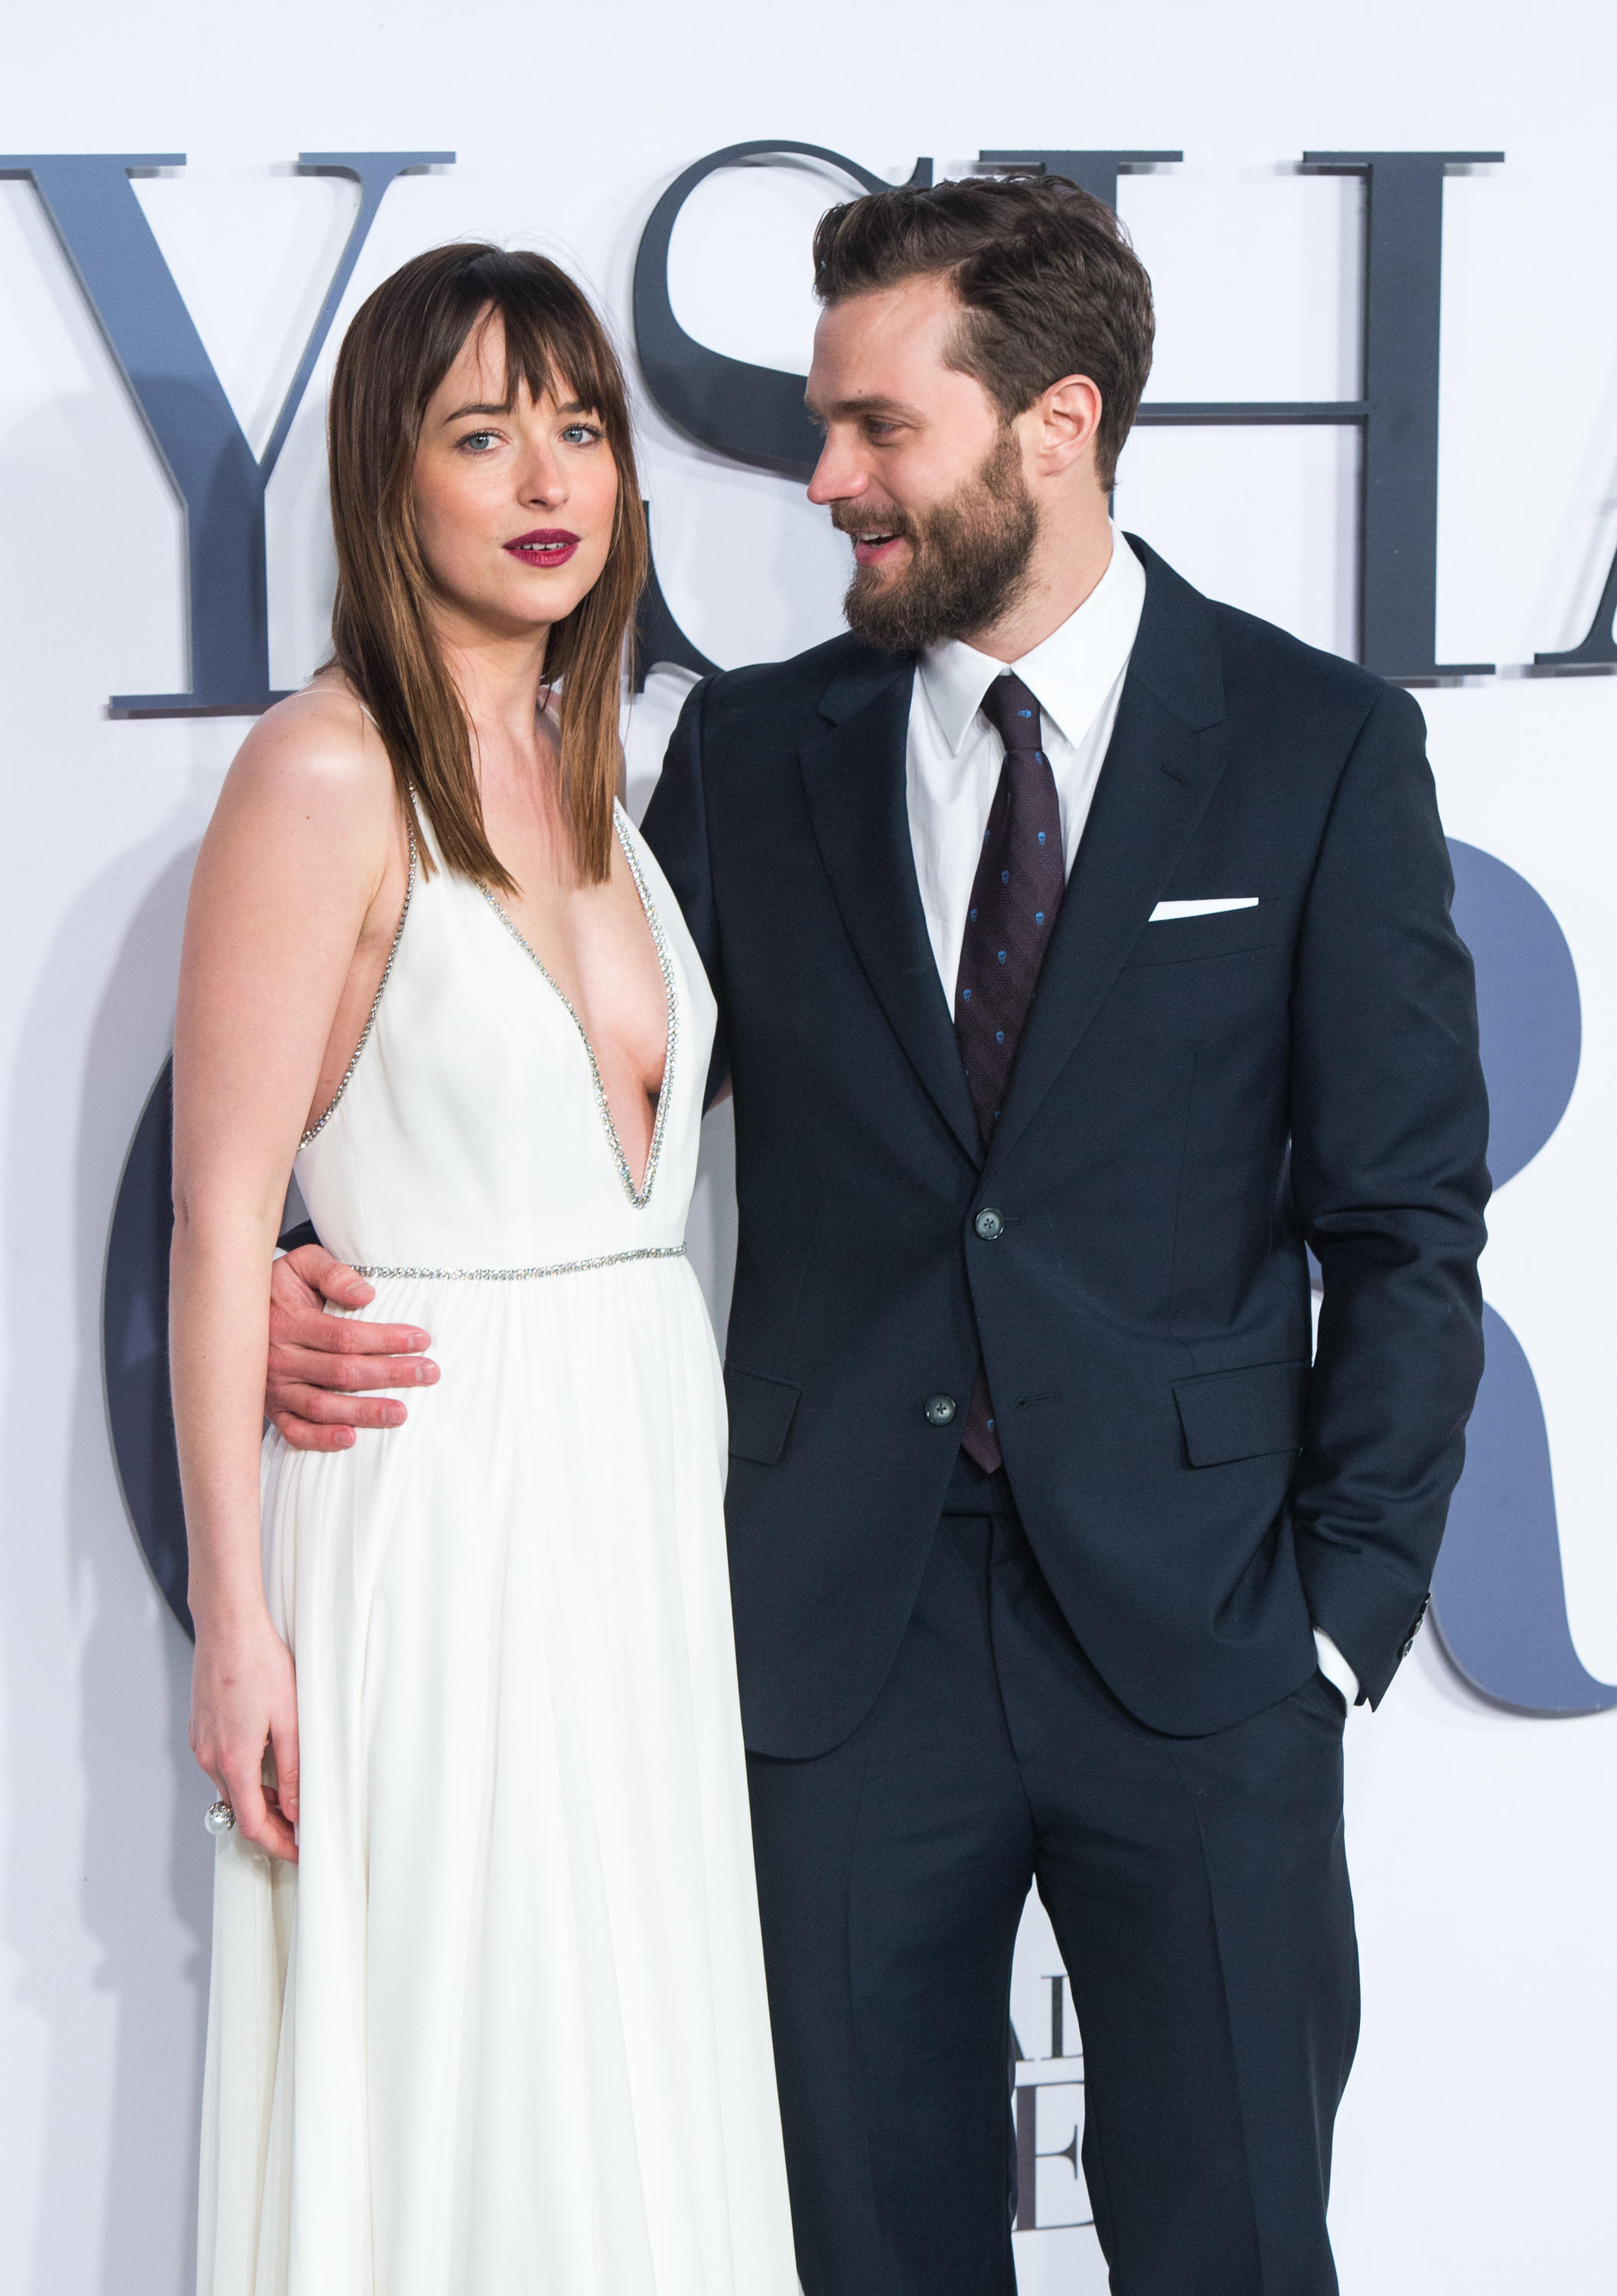 Jamie Dornan and Dakota Johnson attend the UK Premiere of 'Fifty Shades Of Grey'